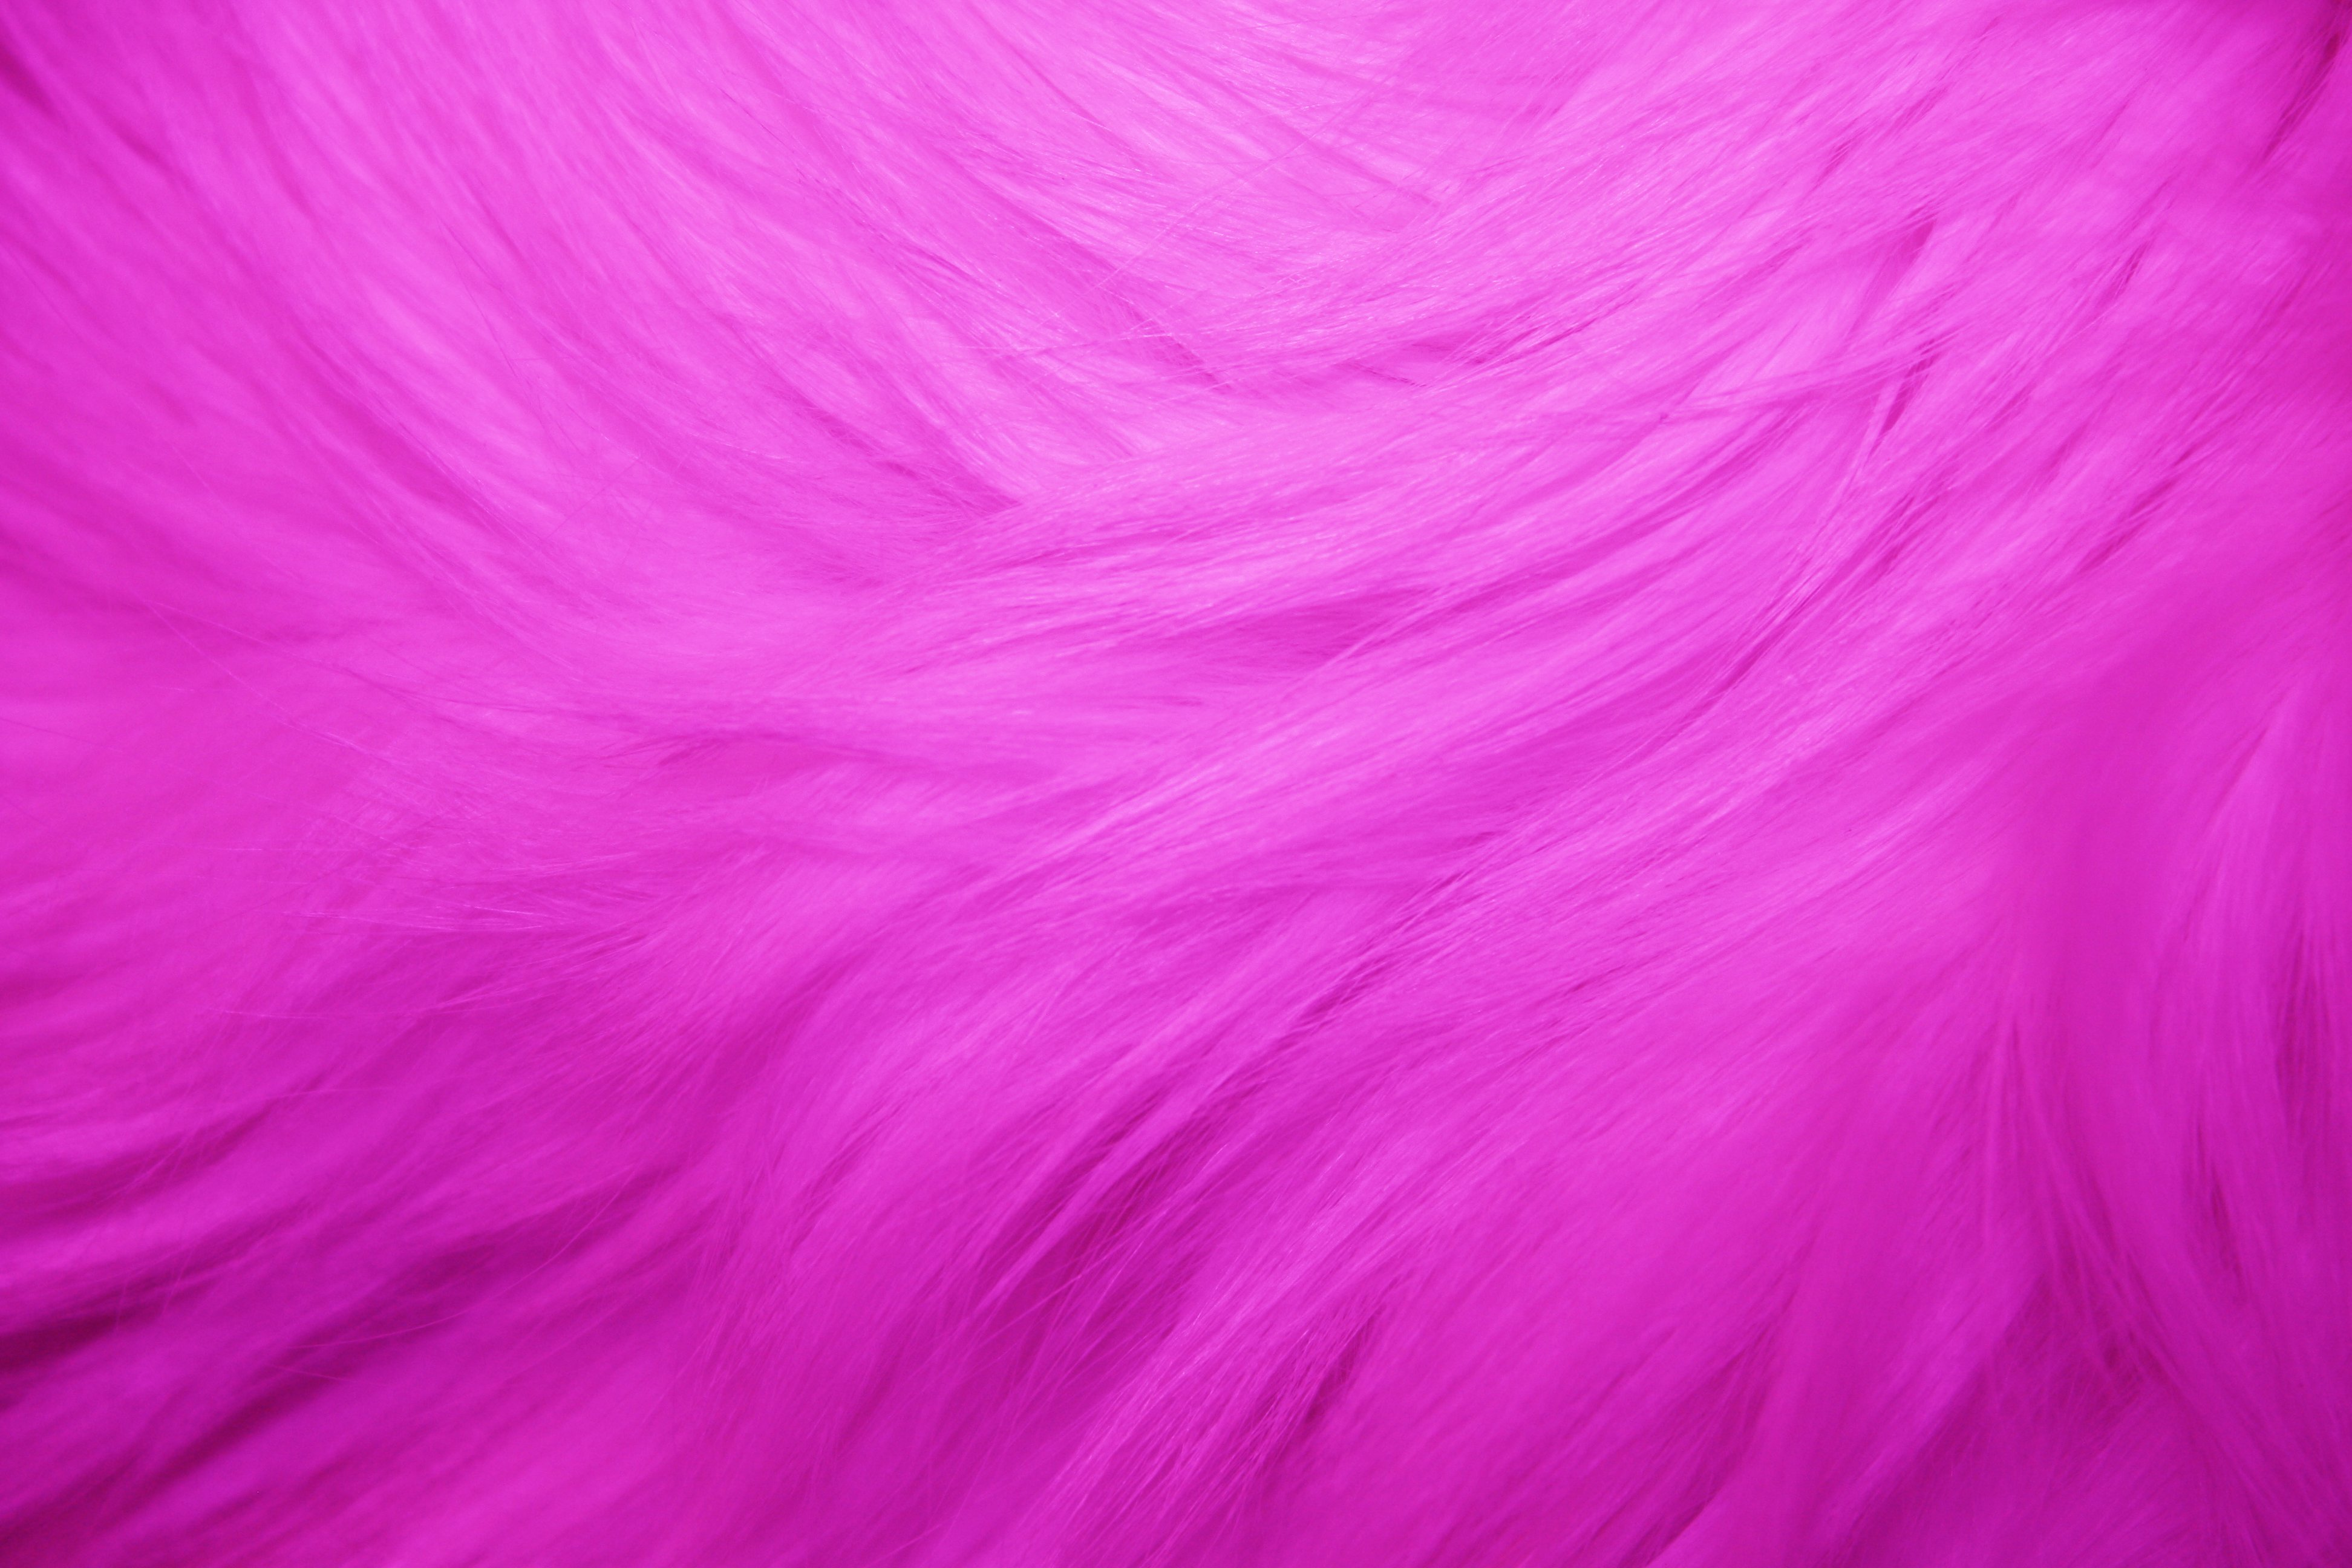 hot pink fur texture picture free photograph photos